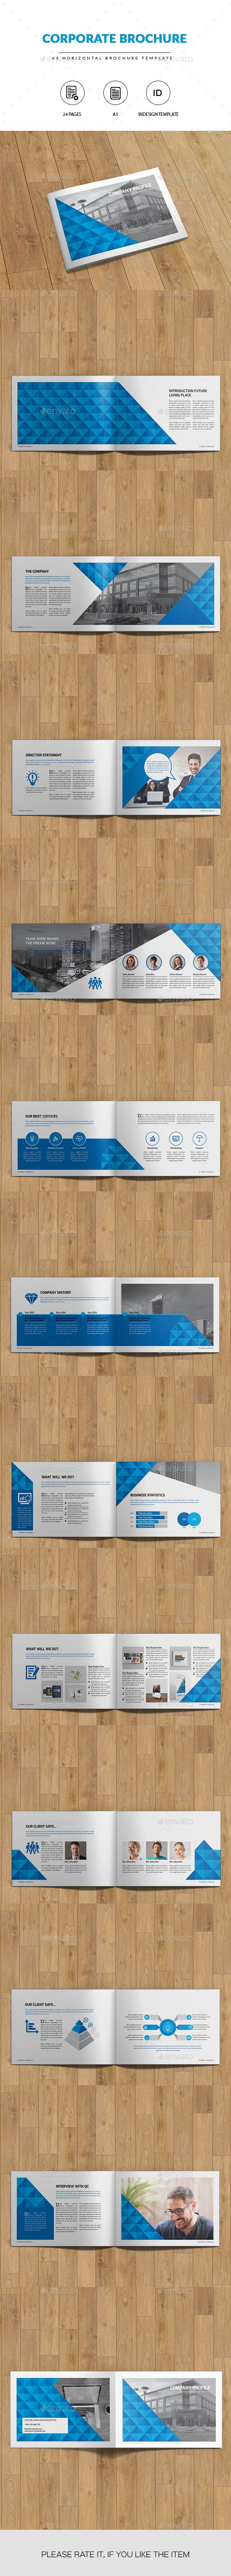 A5 Business Brochure | Indesign Template